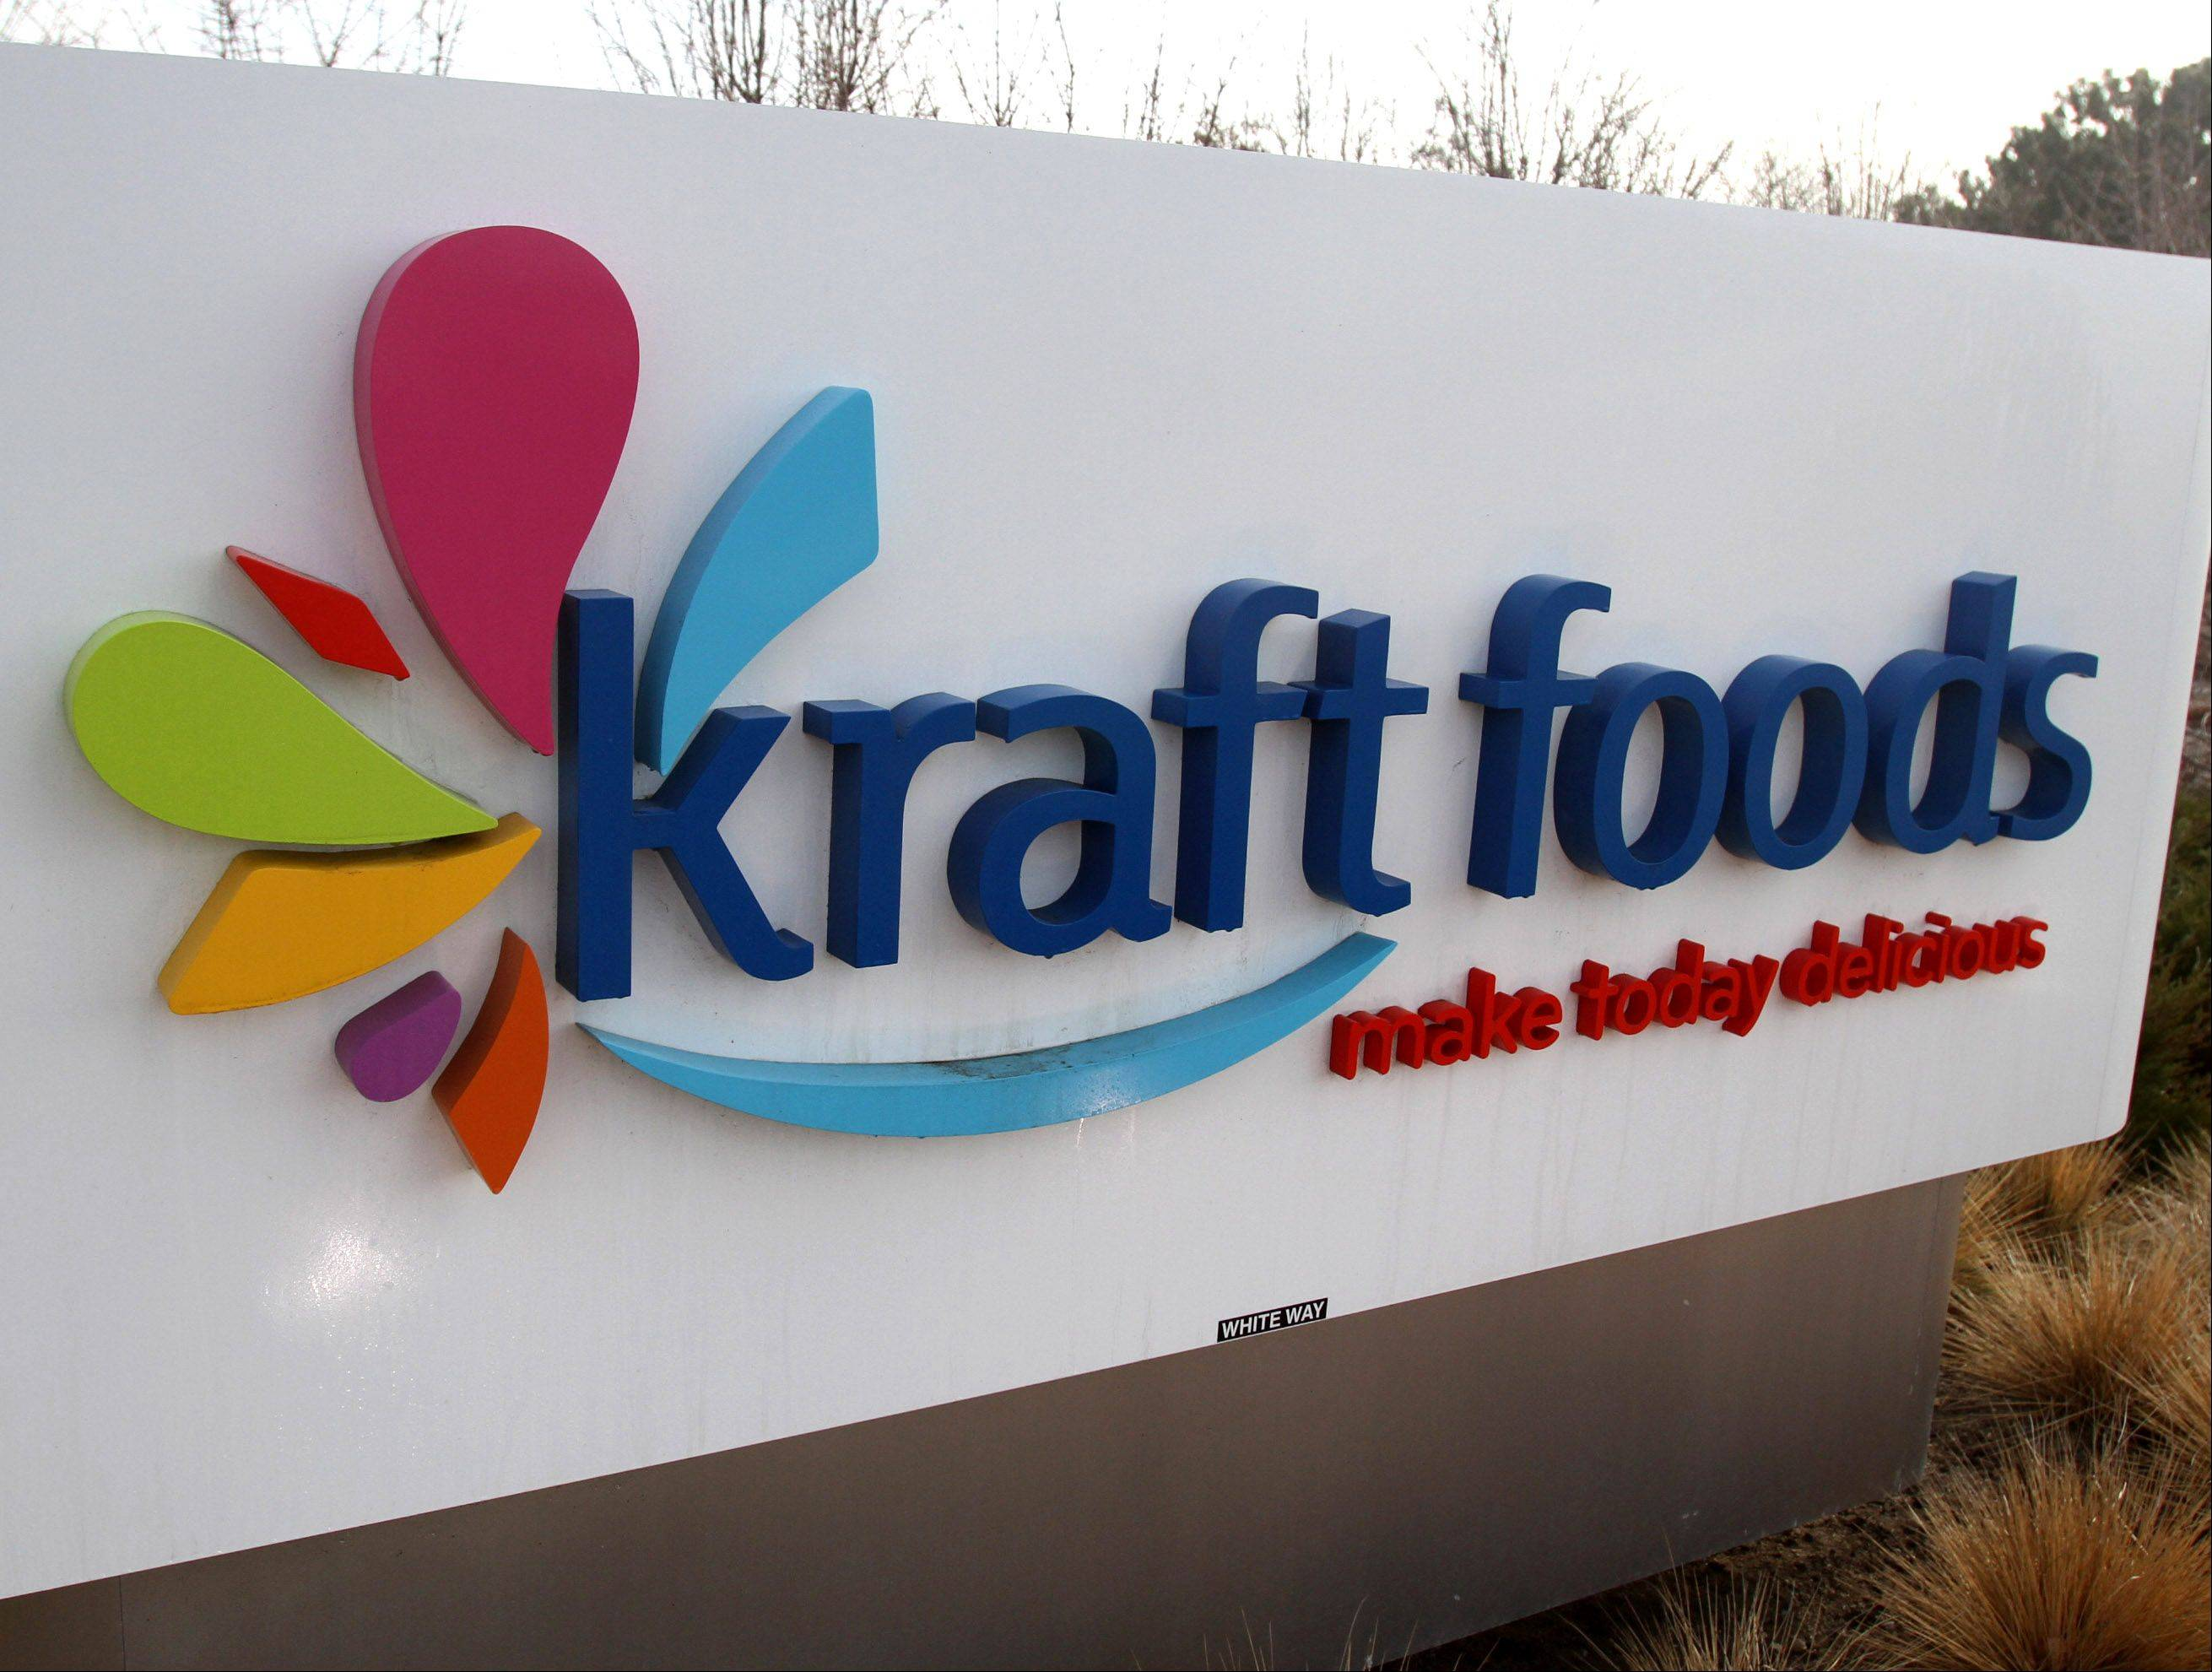 Northfield-based Kraft Foods Group Inc. is putting its Breakstone's sour cream and cottage cheese business up for sale, less than two weeks after its predecessor's split, said people with knowledge of the situation.